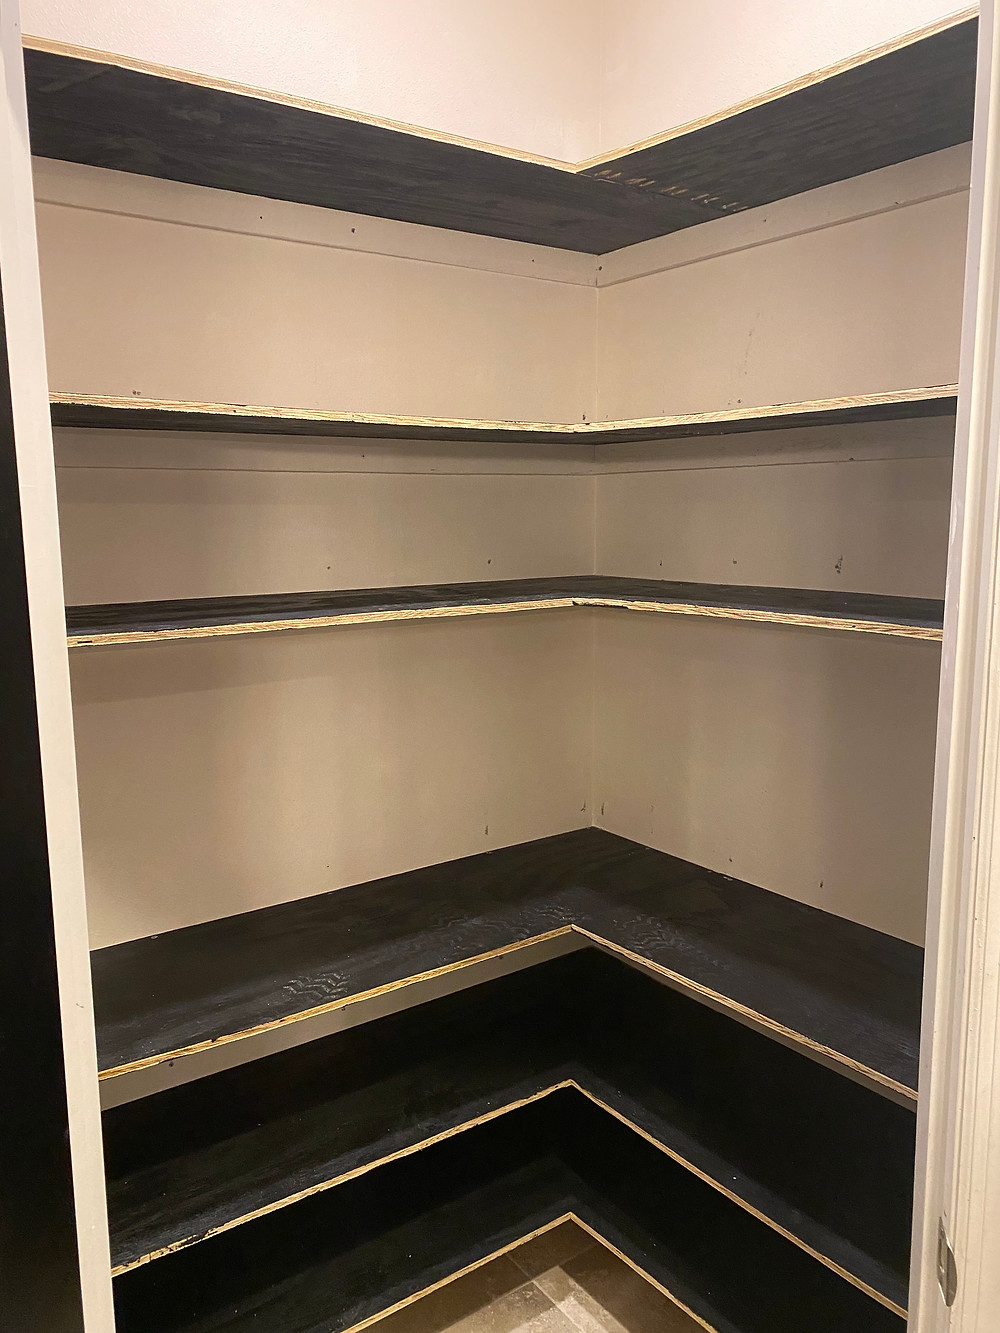 Unfinished shelves in place